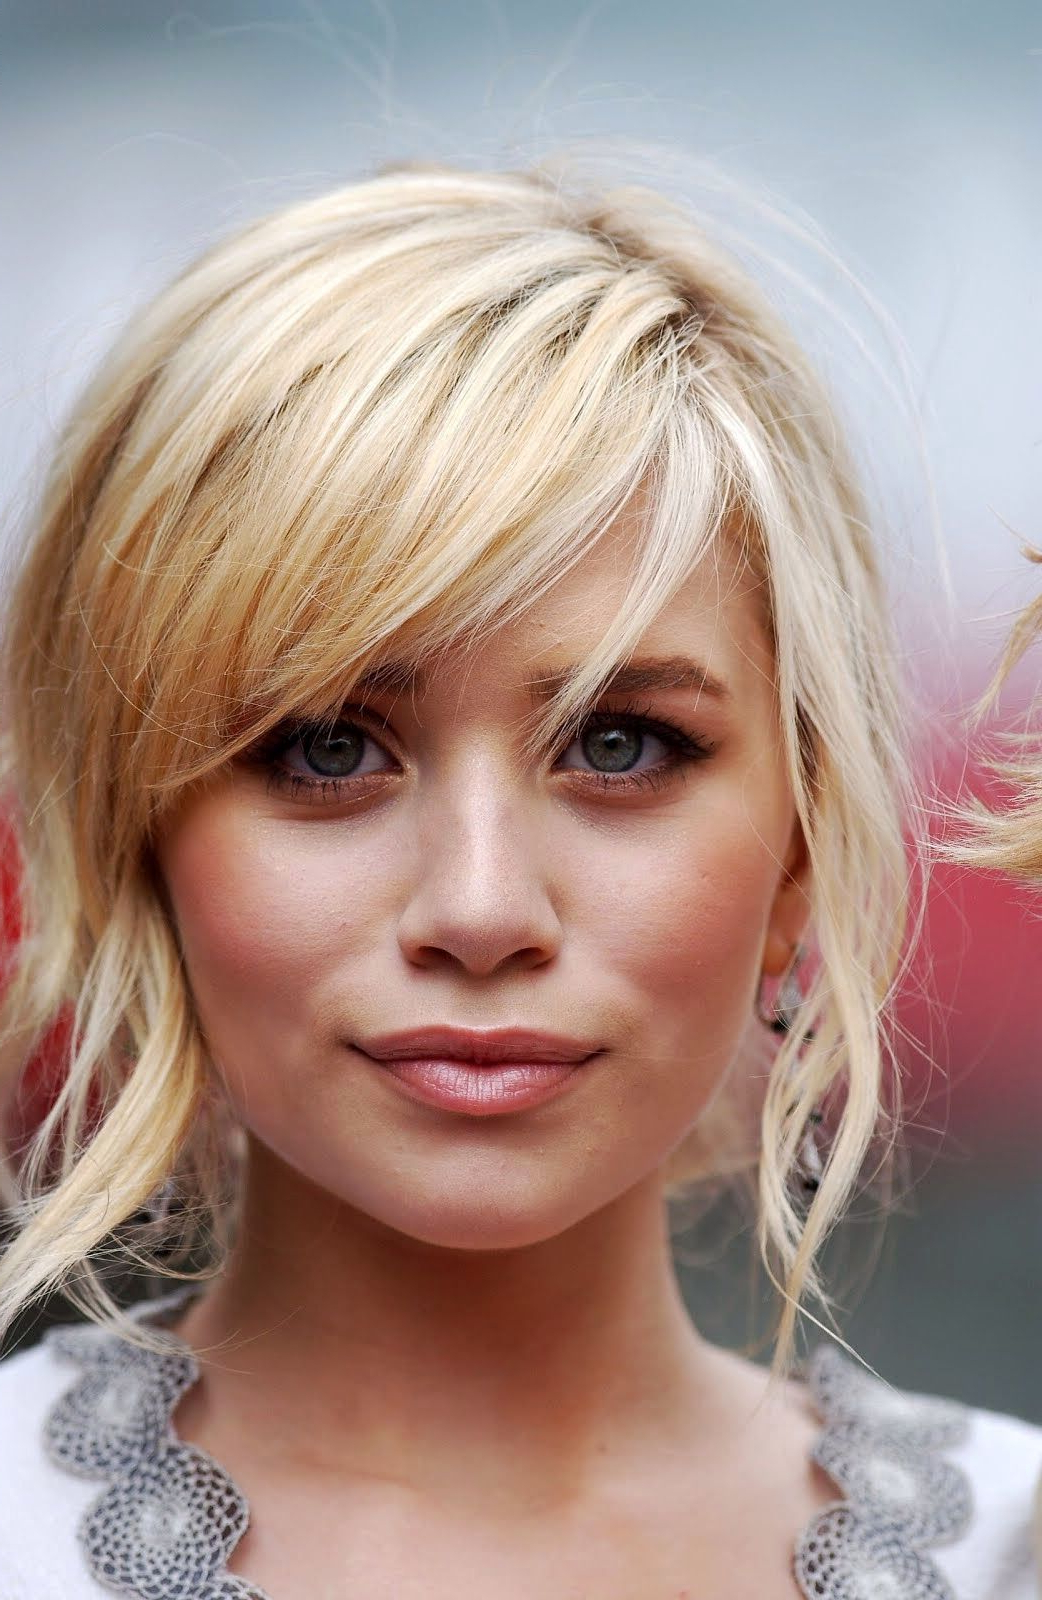 Layered Hair With Bangs Intended For Most Current Short Blonde Side Bangs Hairstyles (View 11 of 20)